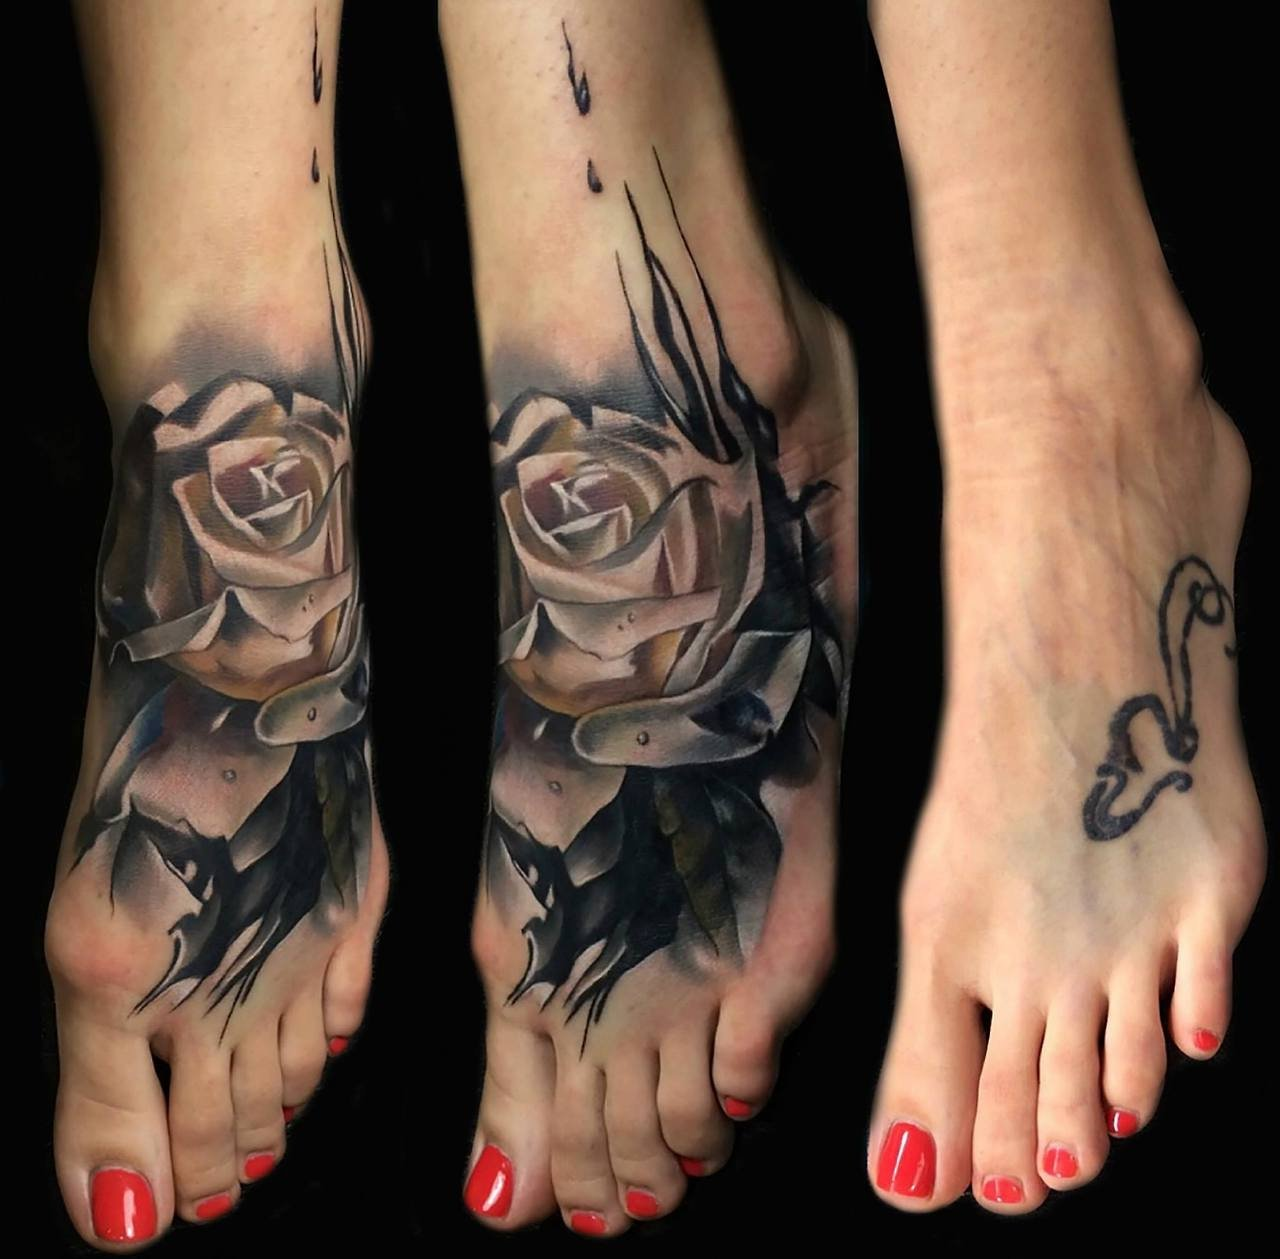 foot rose cover up tattoo design | best tattoo ideas gallery